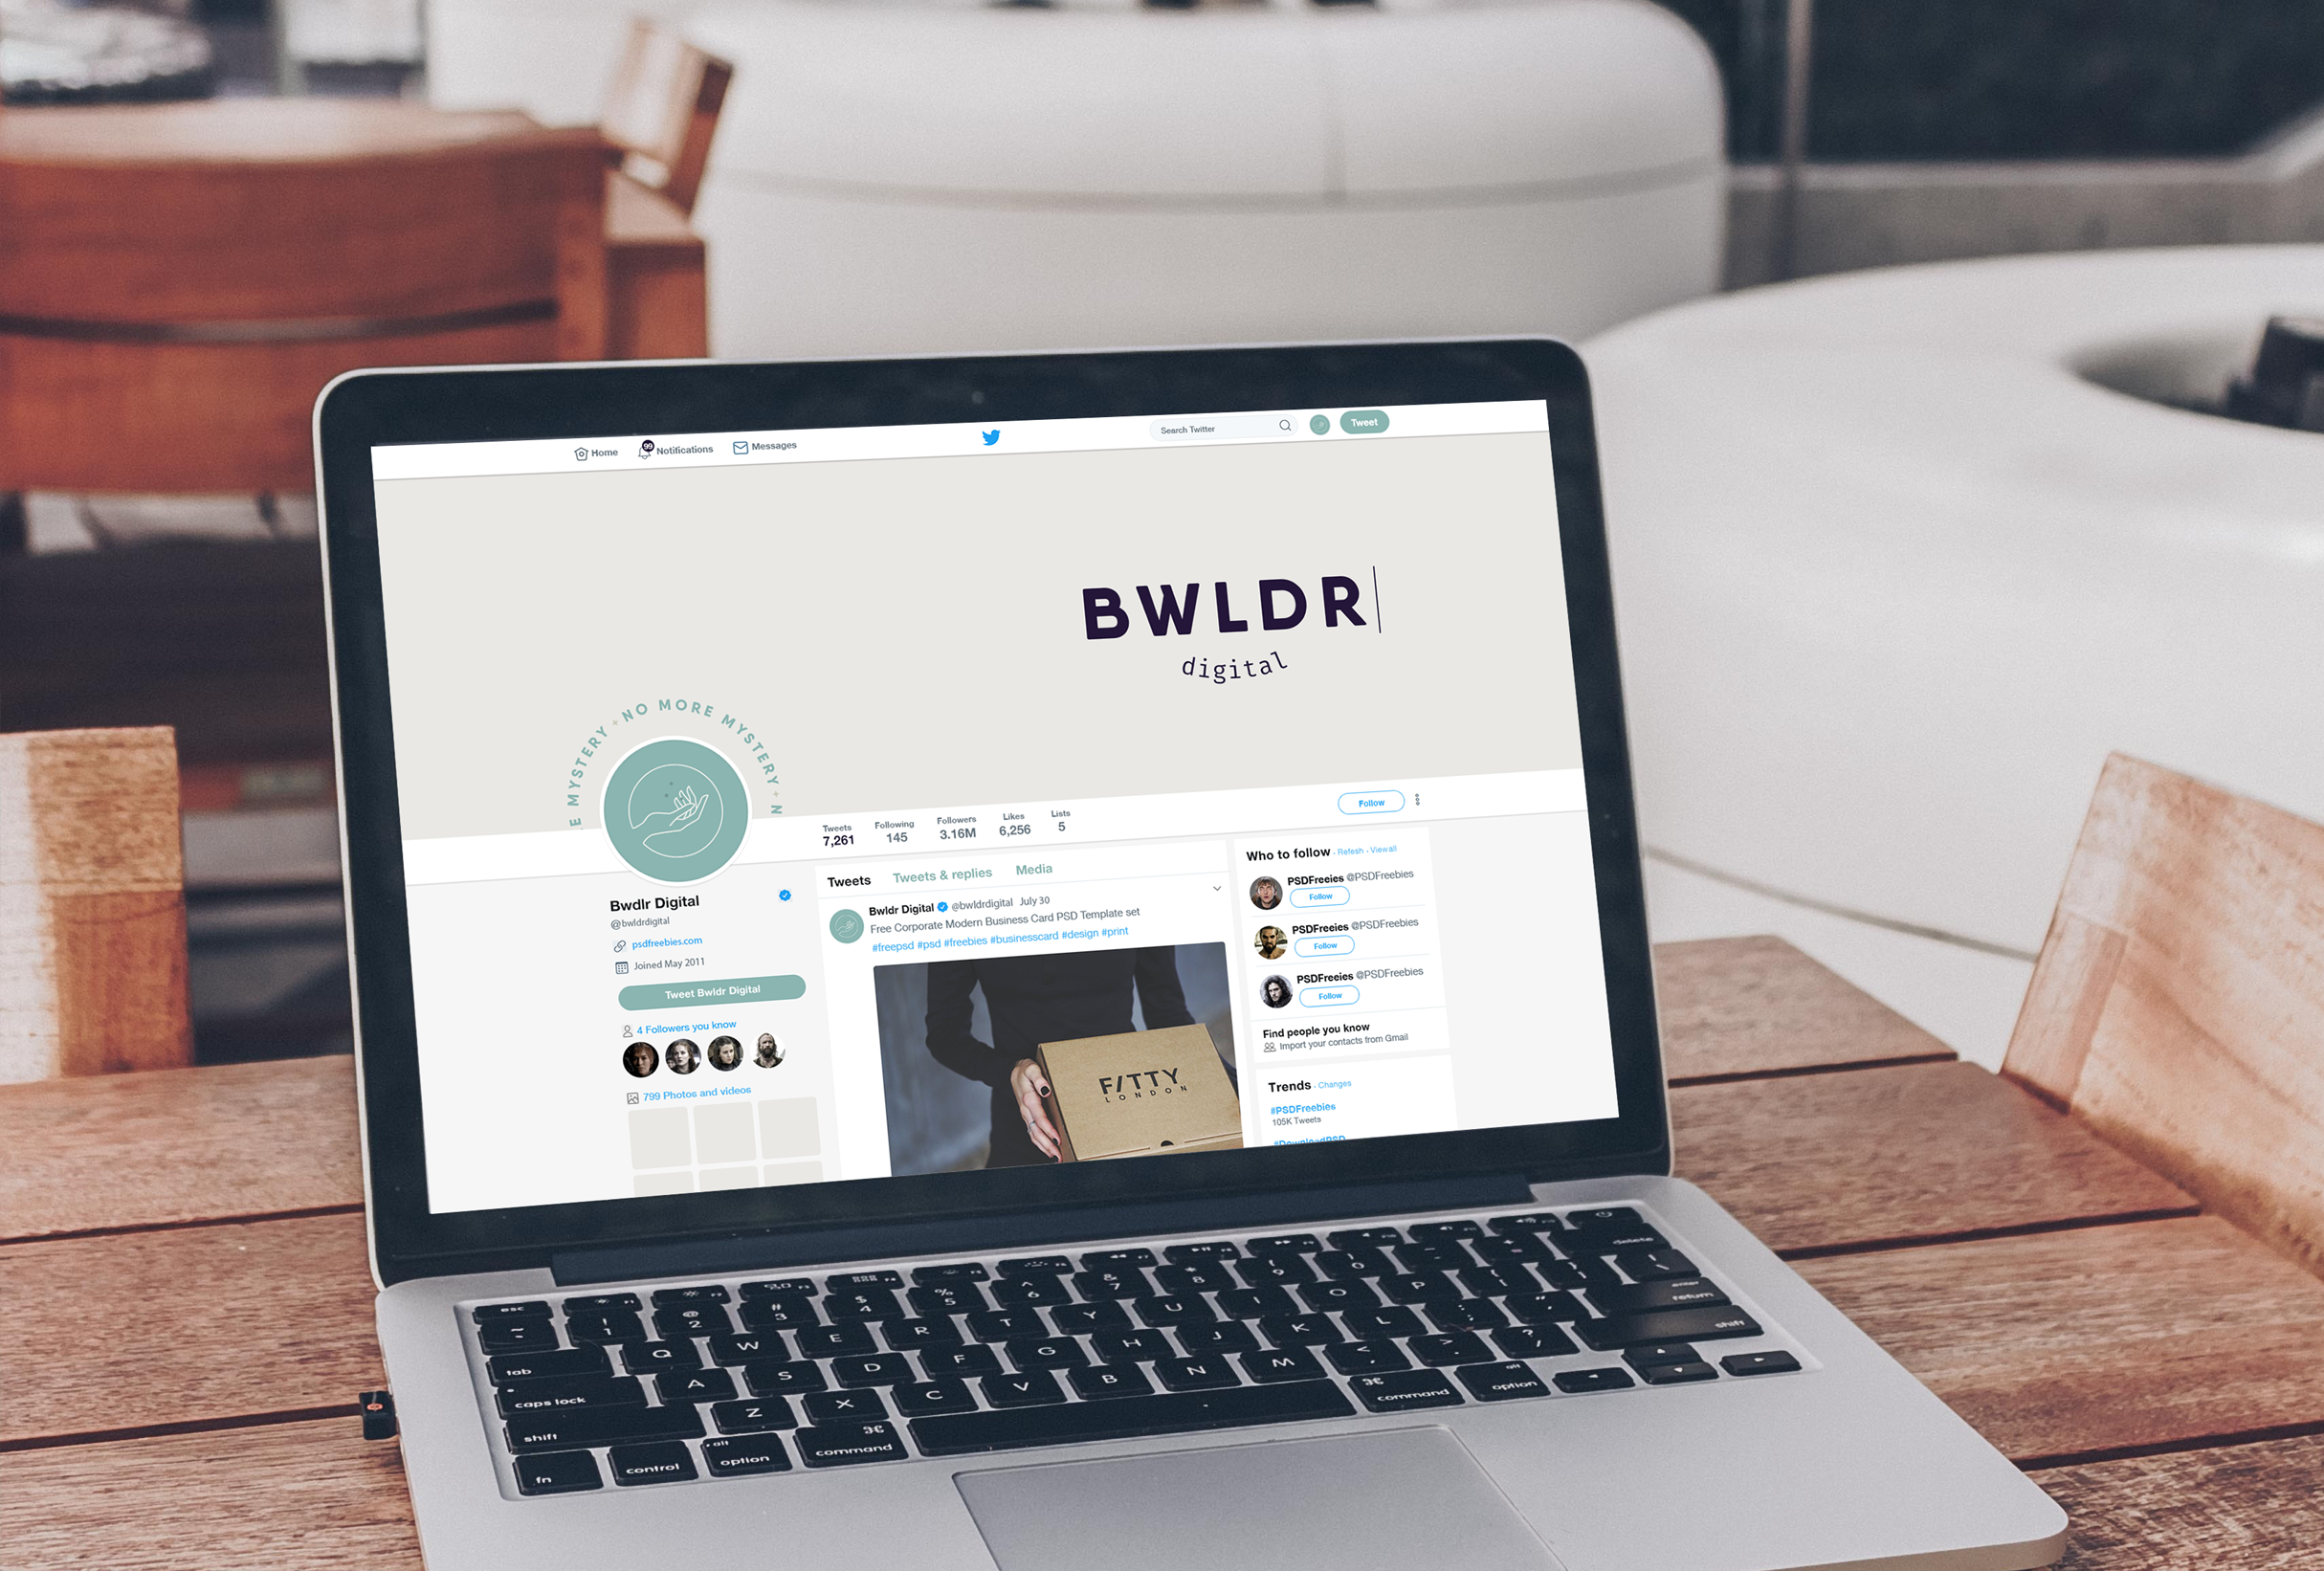 Twitter profile design for Bwldr Digital, a marketing agency that focuses on helping small businesses in the local community and donates a percentage of proceeds to charity - designed by Wiltshire-based graphic designer, Kaye Huett